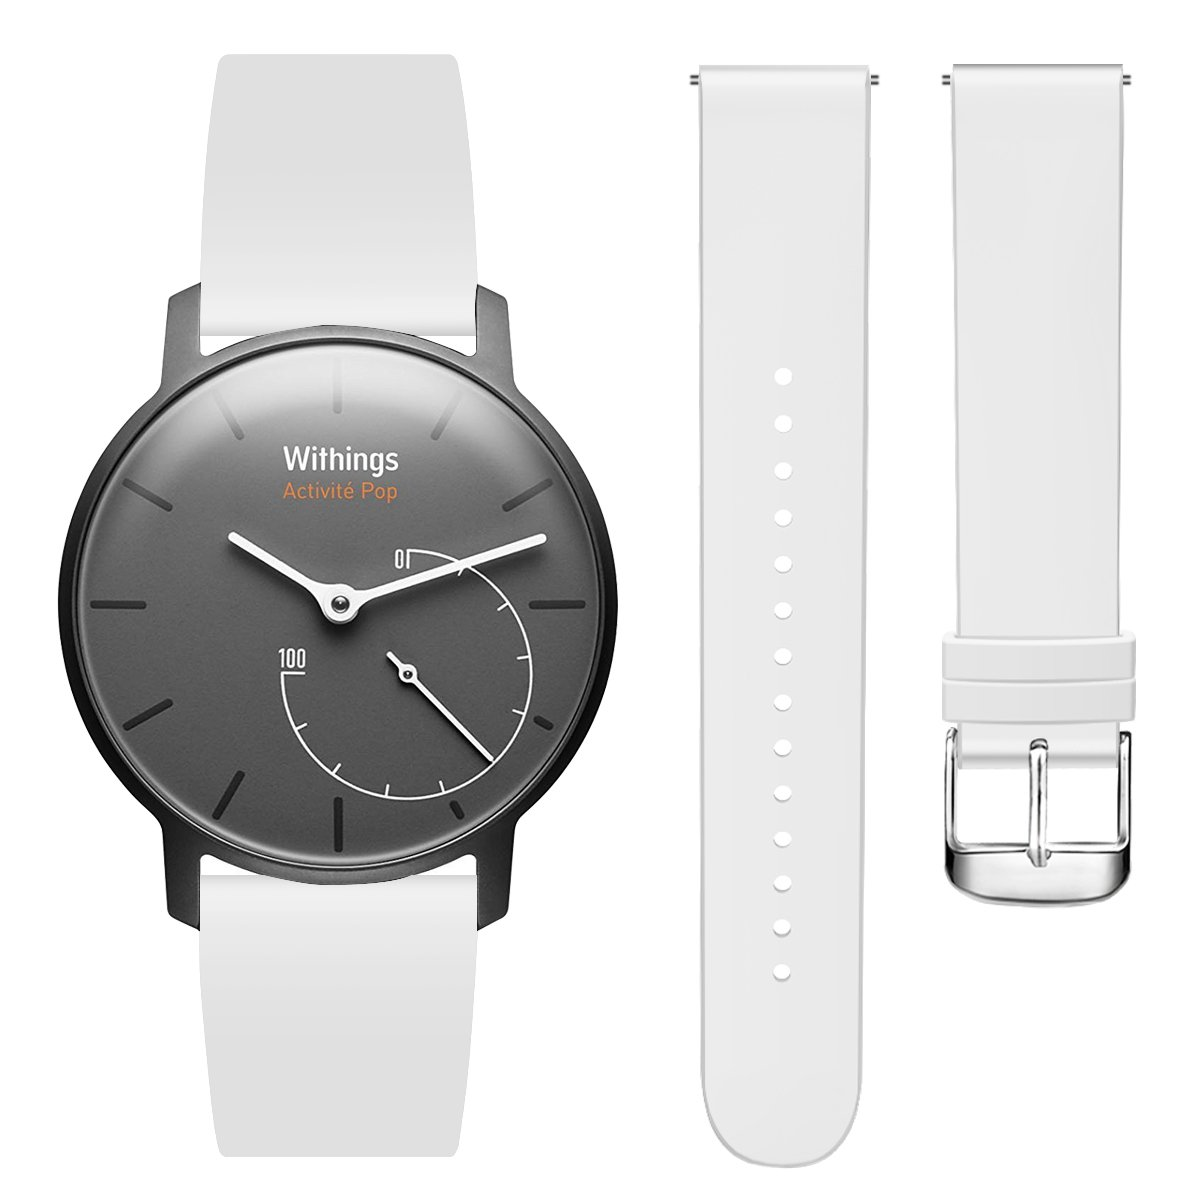 Hanlesi Withings Steel HR Band, Soft Silicone Sport Fashion Replacement Band for Withings Steel Withings Activity Tracking Watch White